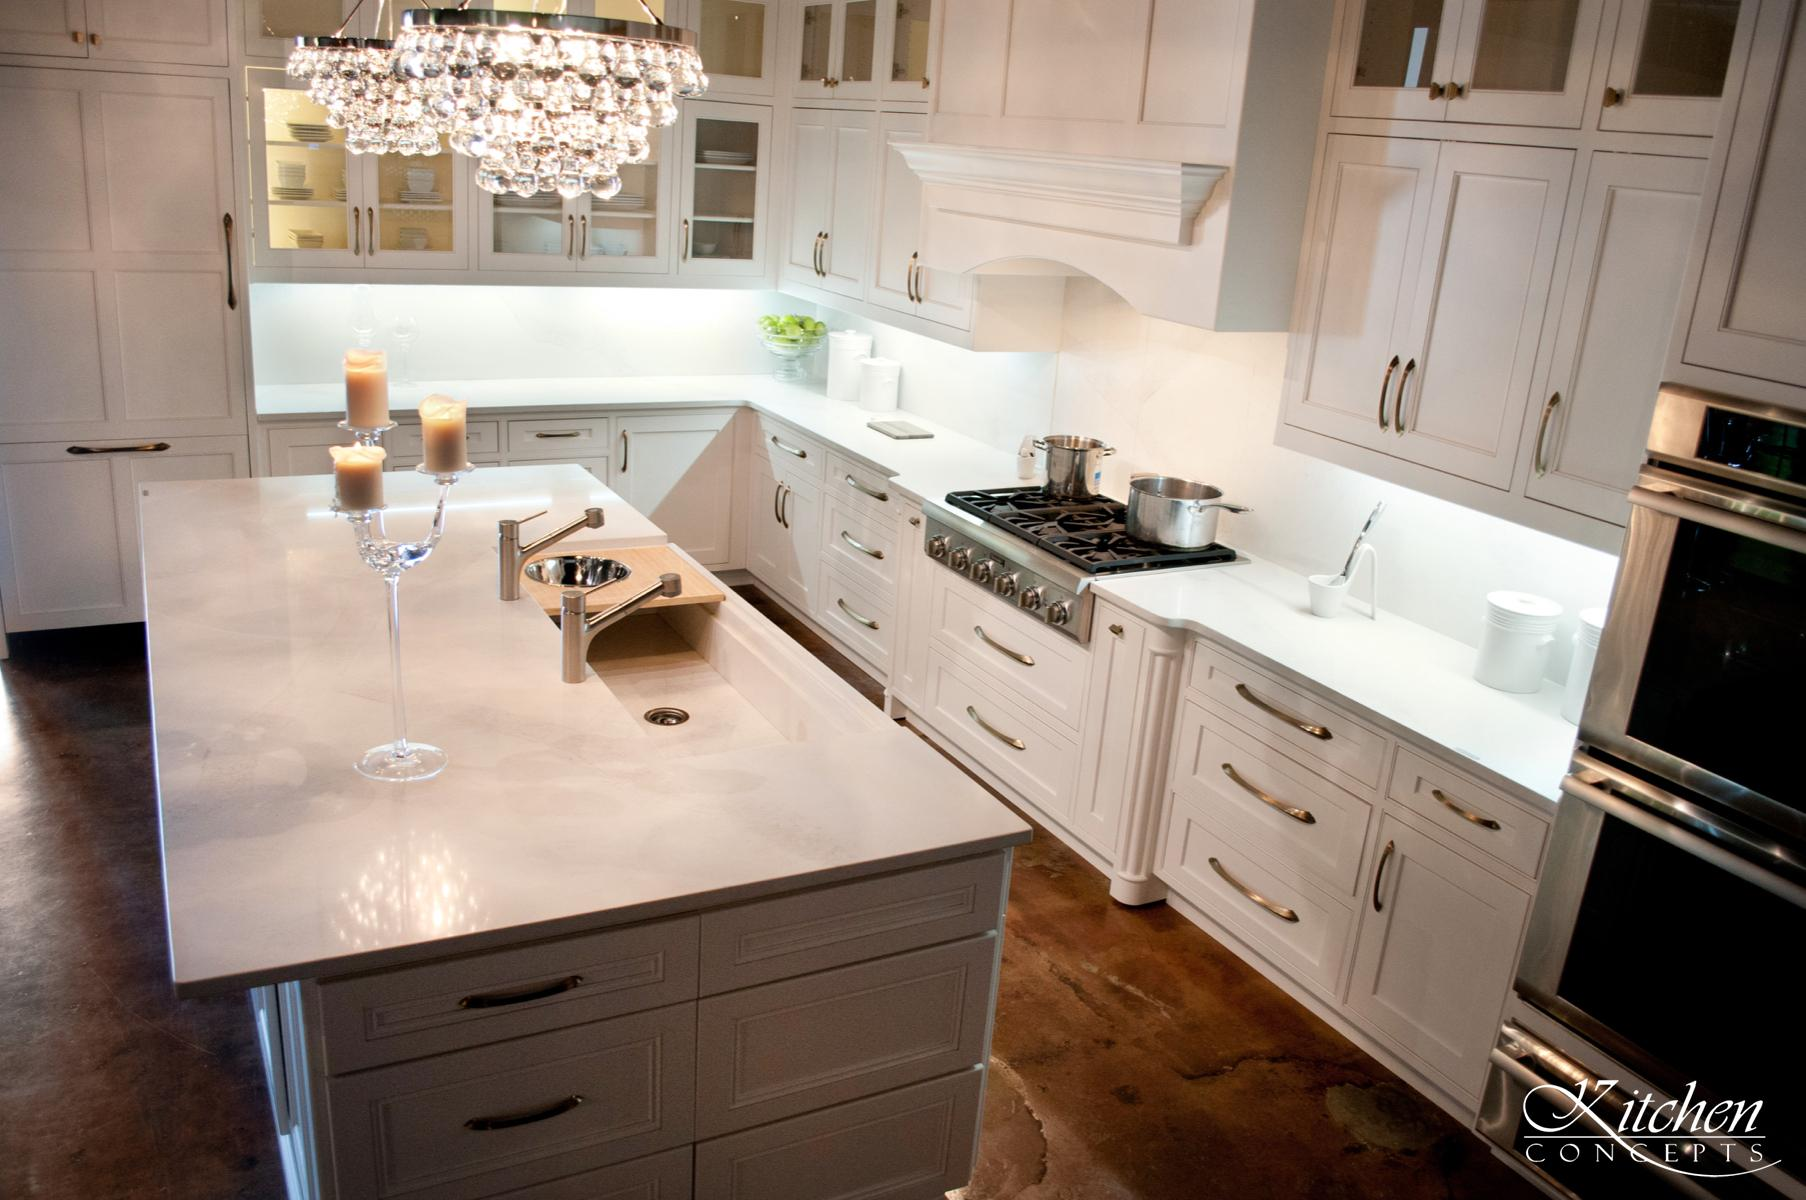 Custom White Kitchen at Kitchen Concepts - Kitchen Concepts